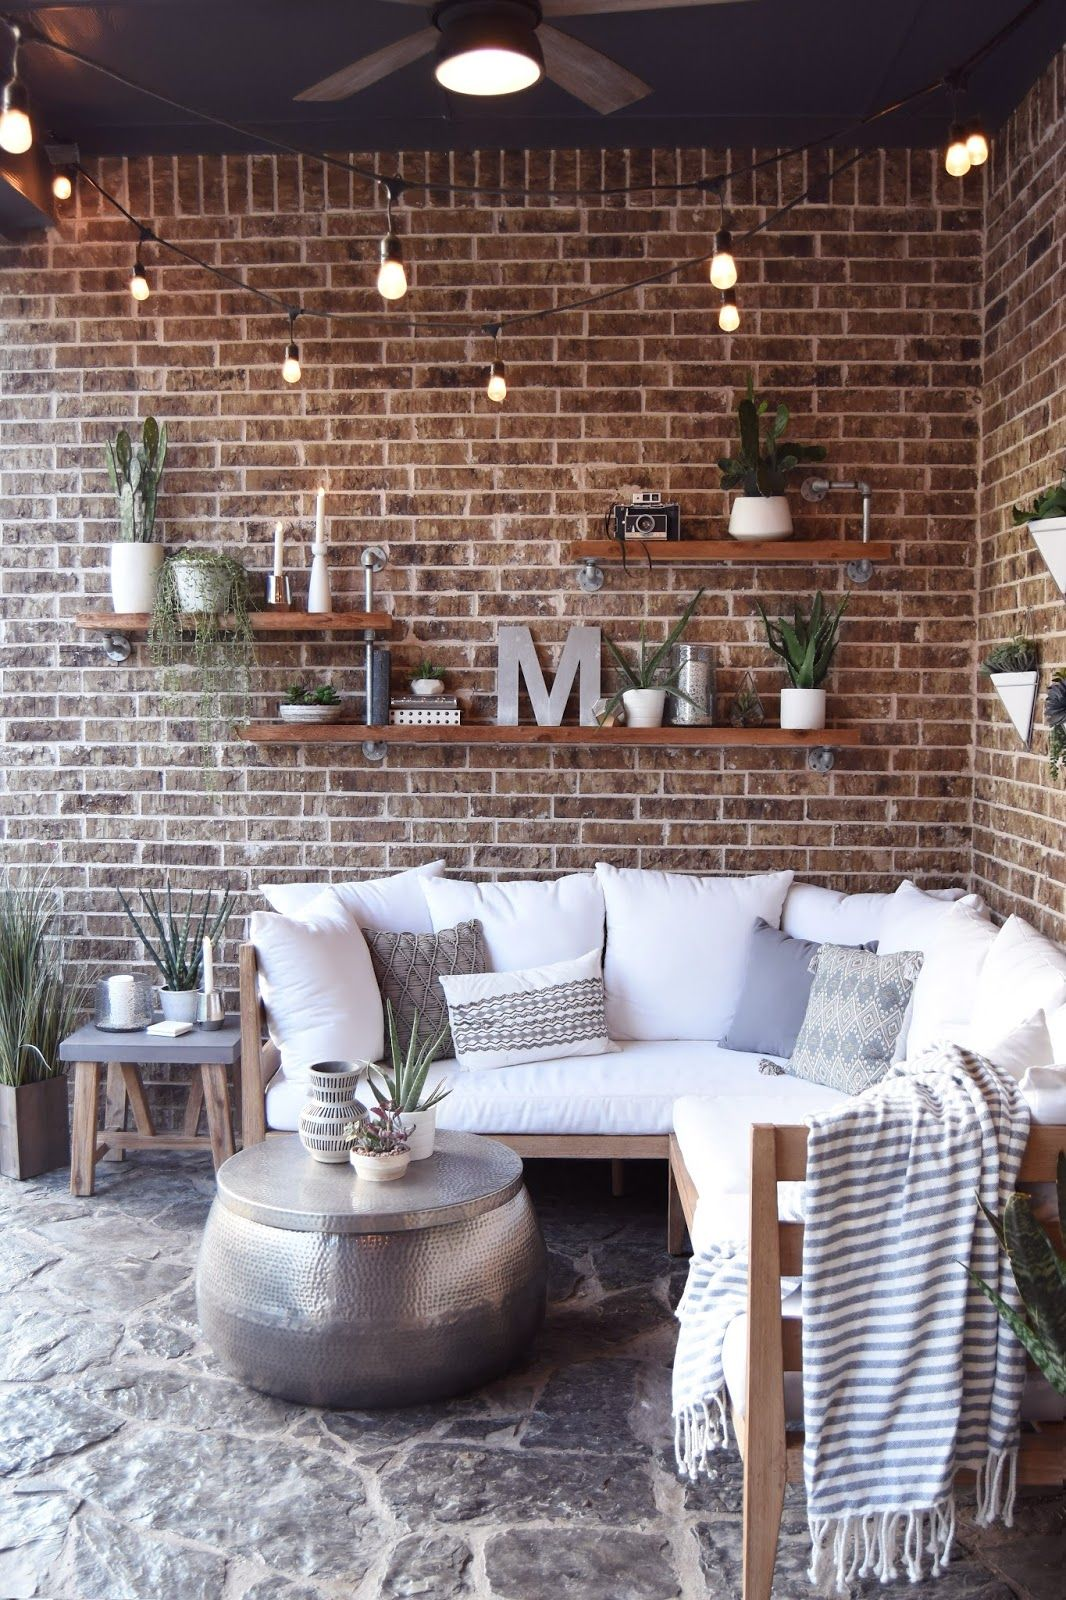 Pillow Thought Home Outdoor Living Space If You Are New Coming From Egg Shell Home Welcome I M So Glad You Patio Wall Decor Outdoor Patio Decor Patio Decor